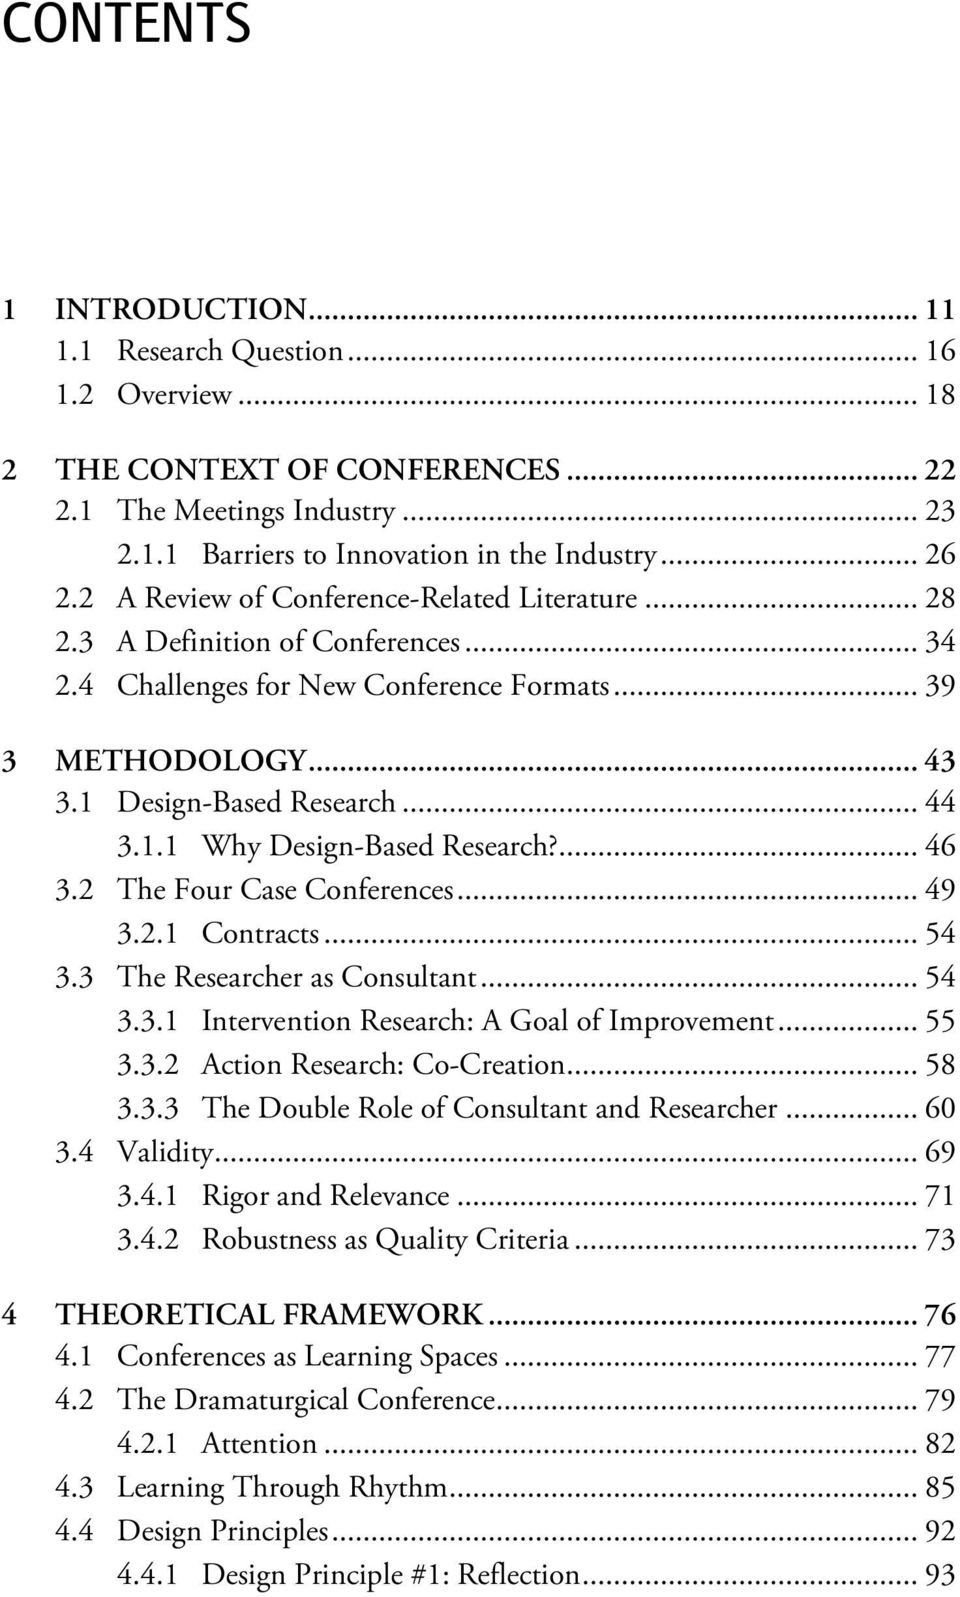 ... 46 3.2 The Four Case Conferences... 49 3.2.1 Contracts... 54 3.3 The Researcher as Consultant... 54 3.3.1 Intervention Research: A Goal of Improvement... 55 3.3.2 Action Research: Co-Creation.